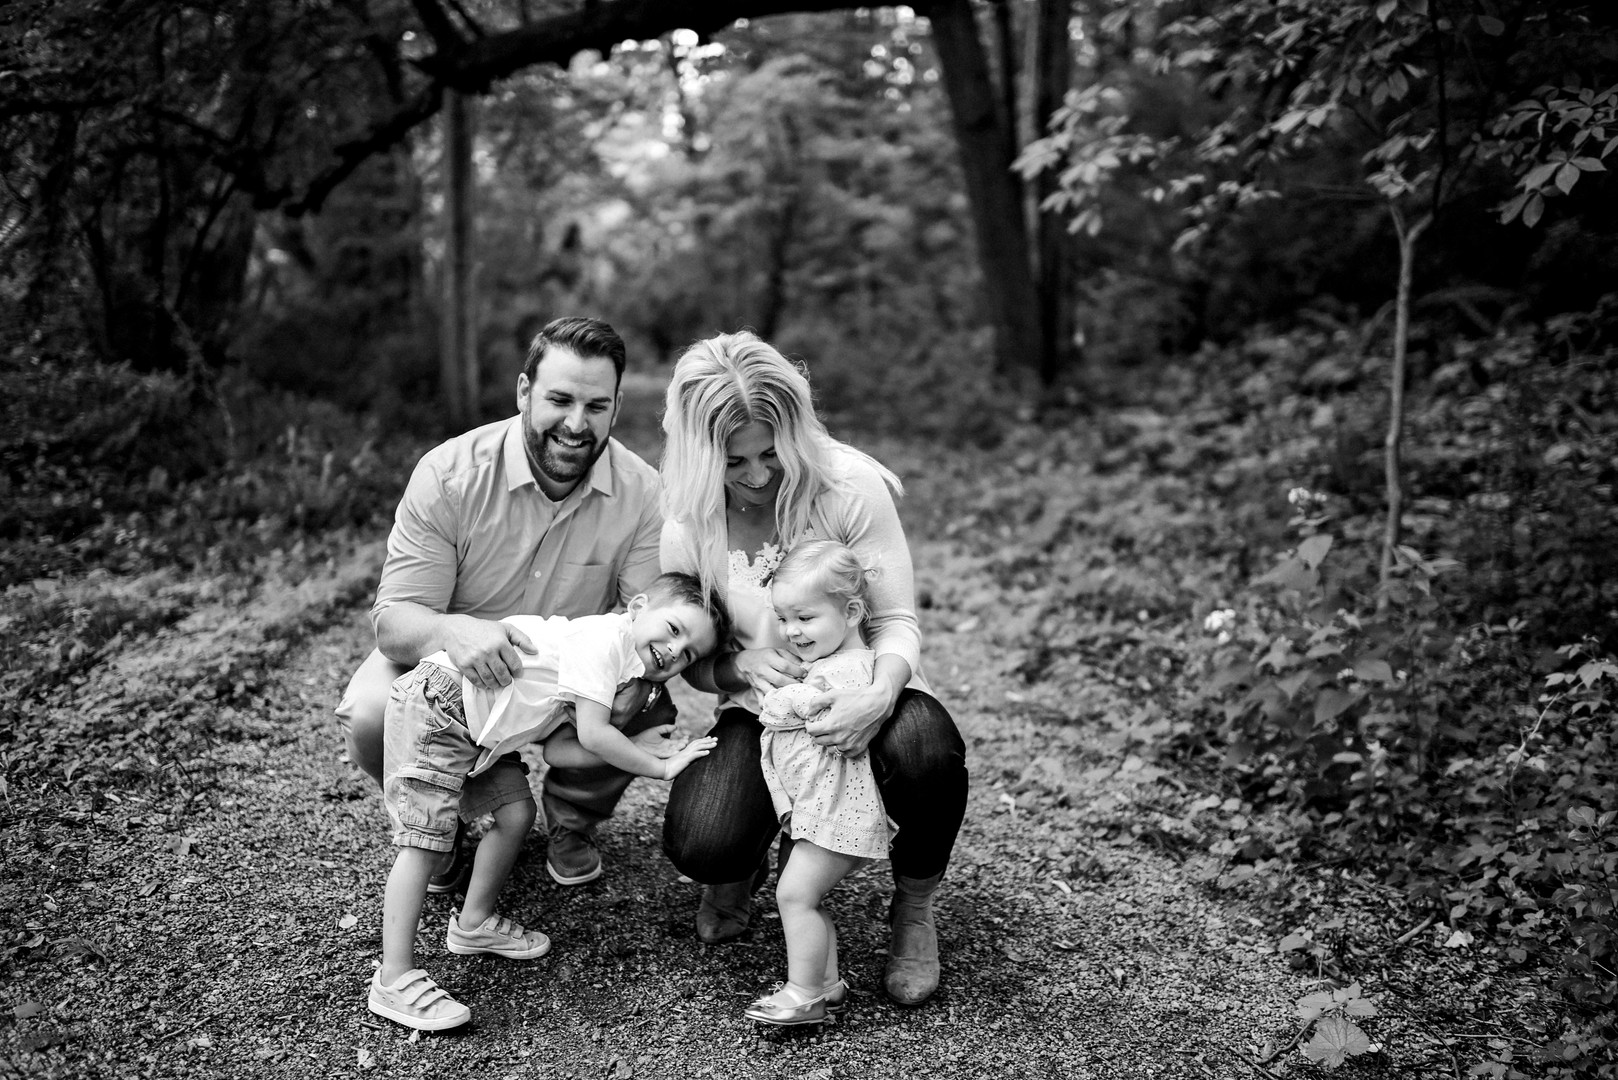 Irvine Park Chippewa Falls Wisconsin Outdoor Unposed Lifestyle Family Photographer